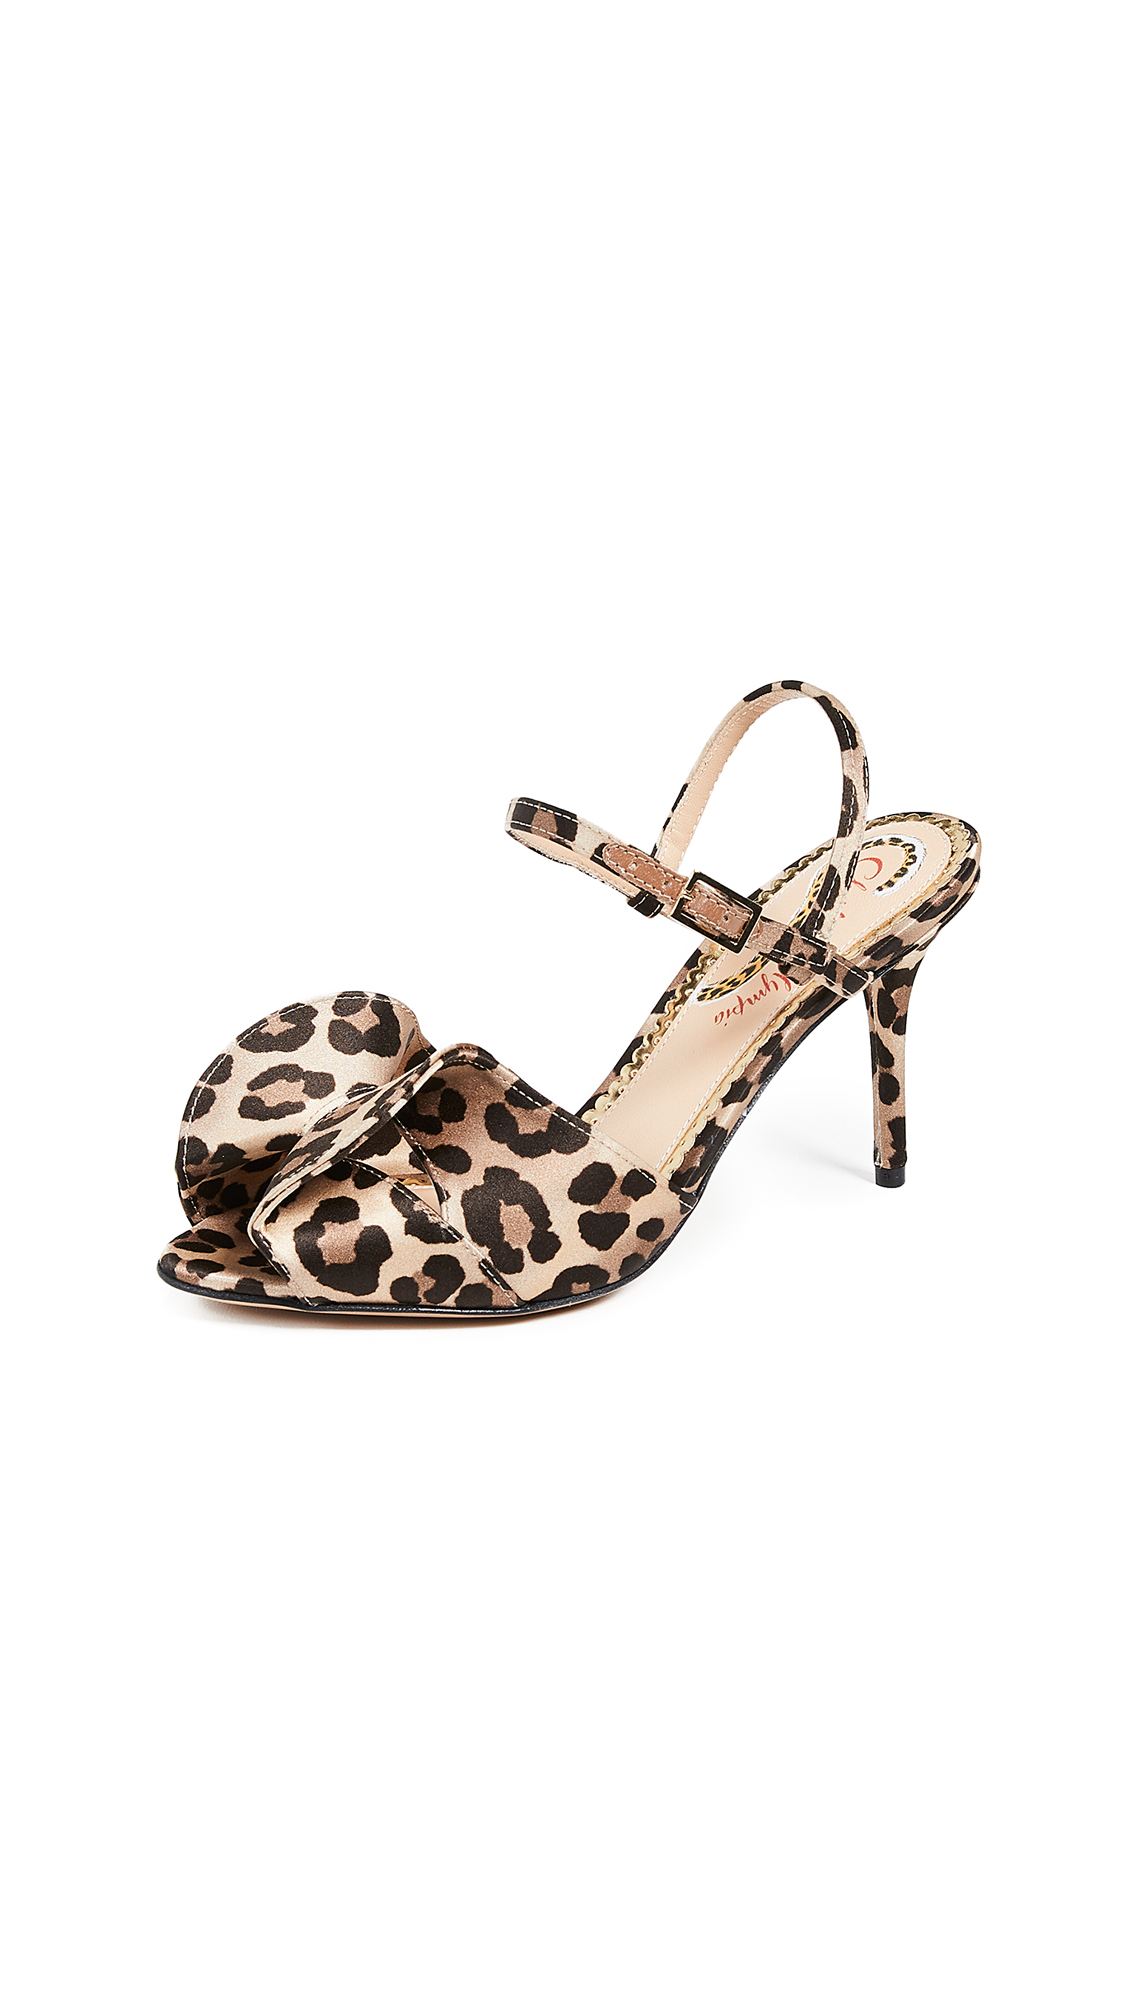 Charlotte Olympia Patrice Sandals - Leopard